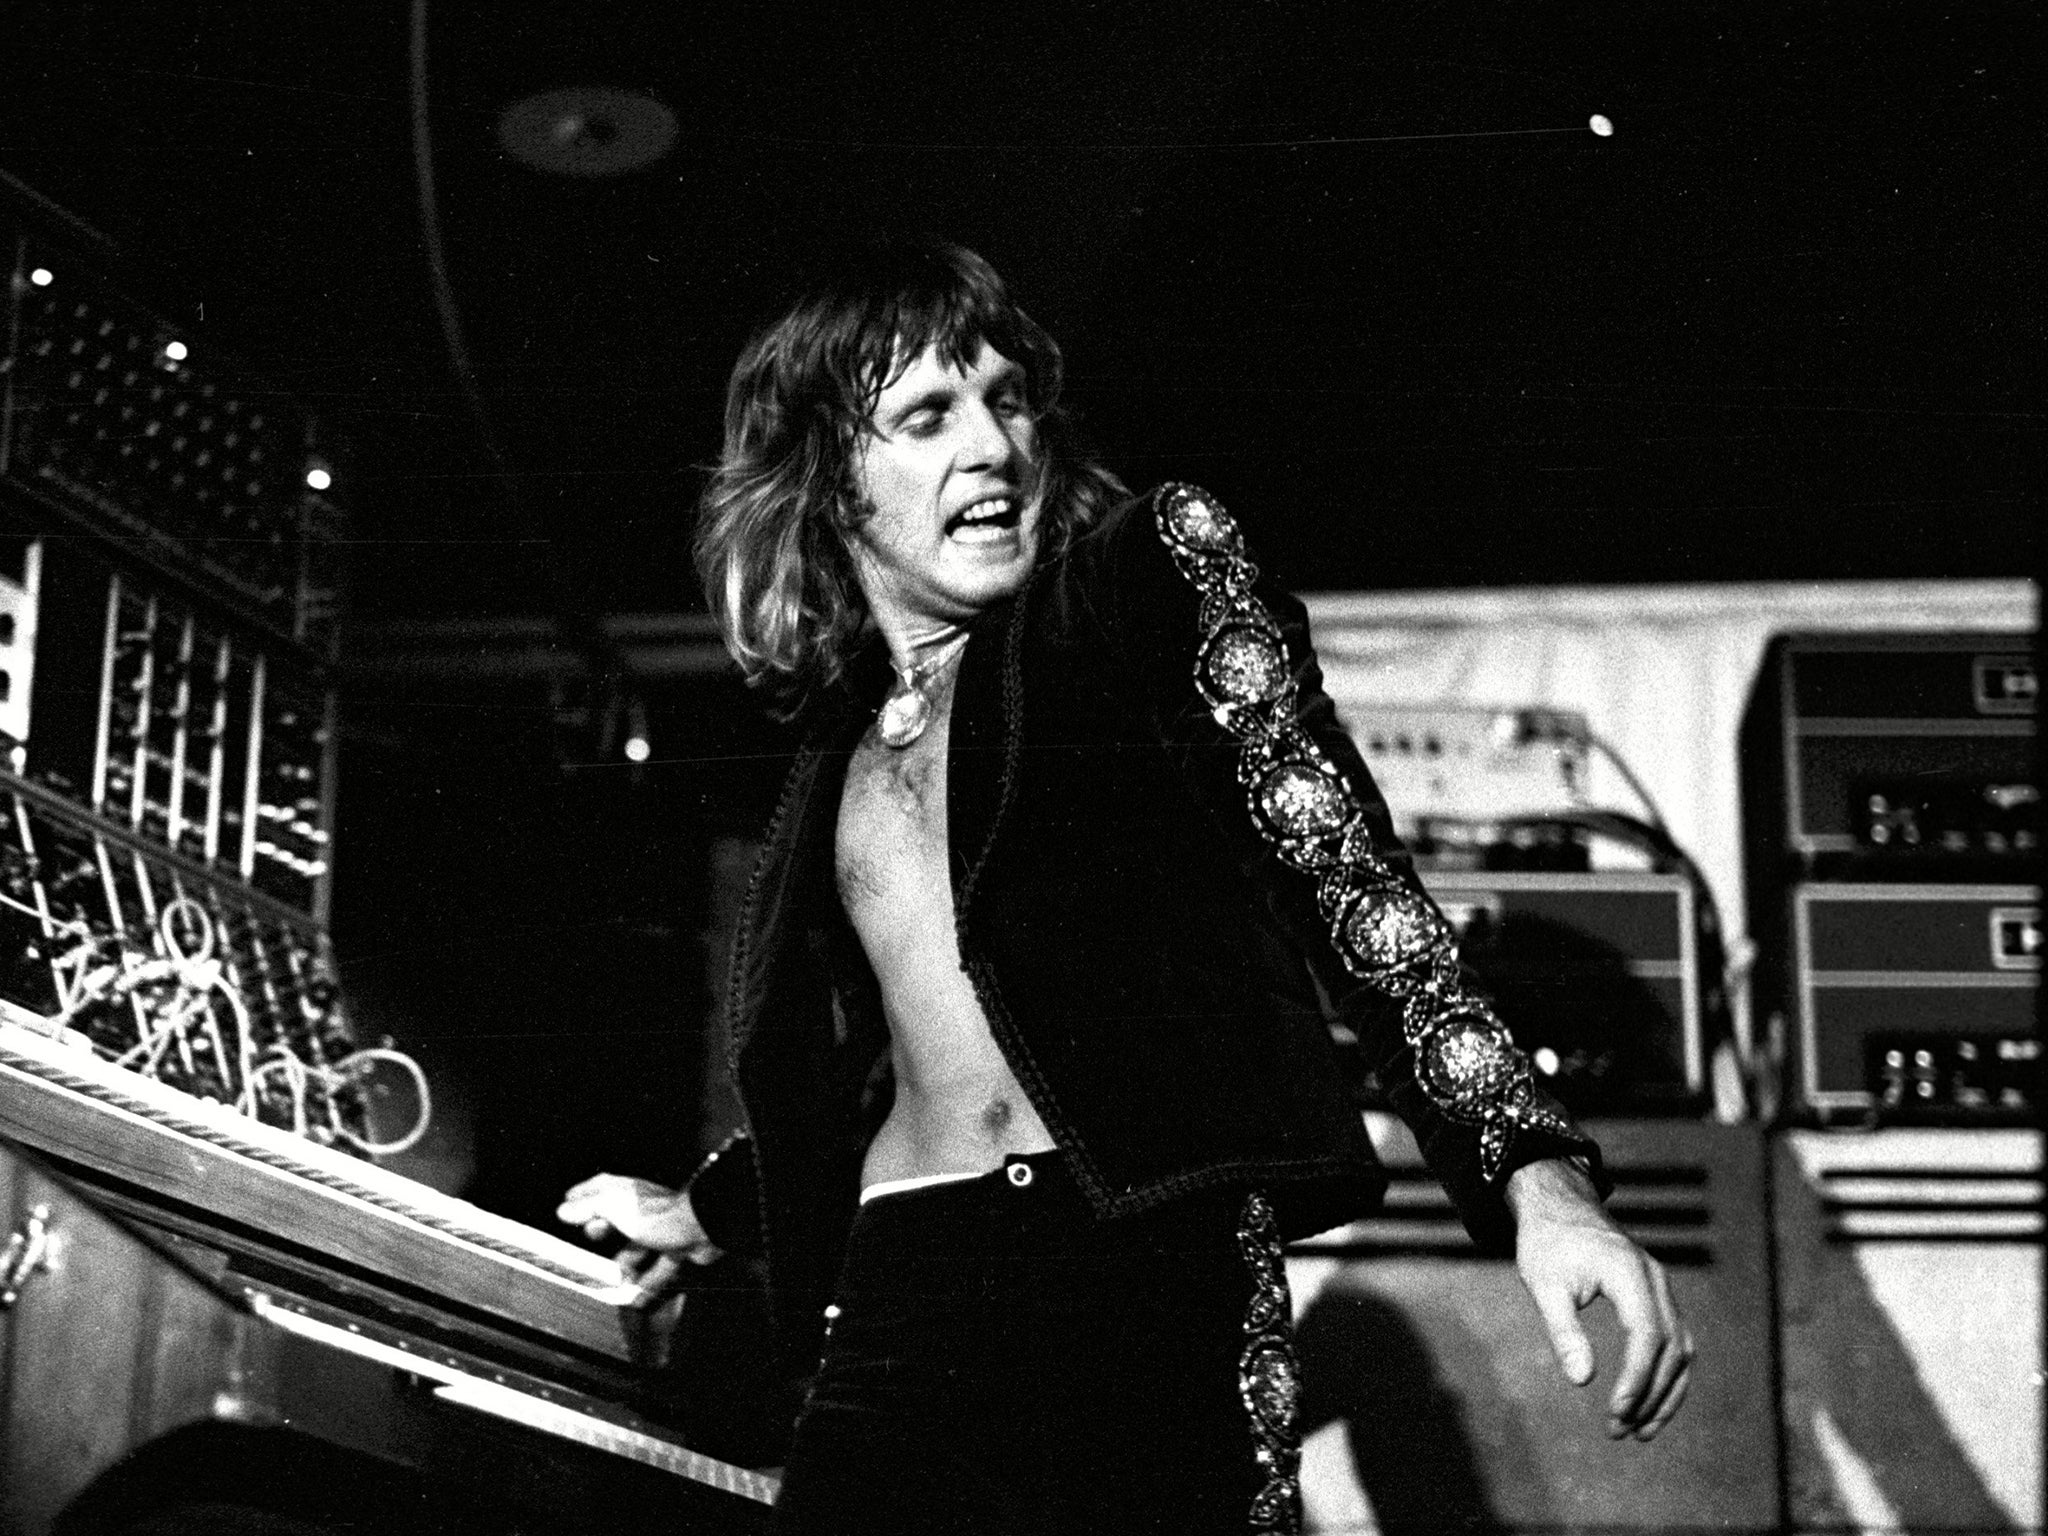 Keith Emerson Virtuoso Musician Whose Work With Elp And